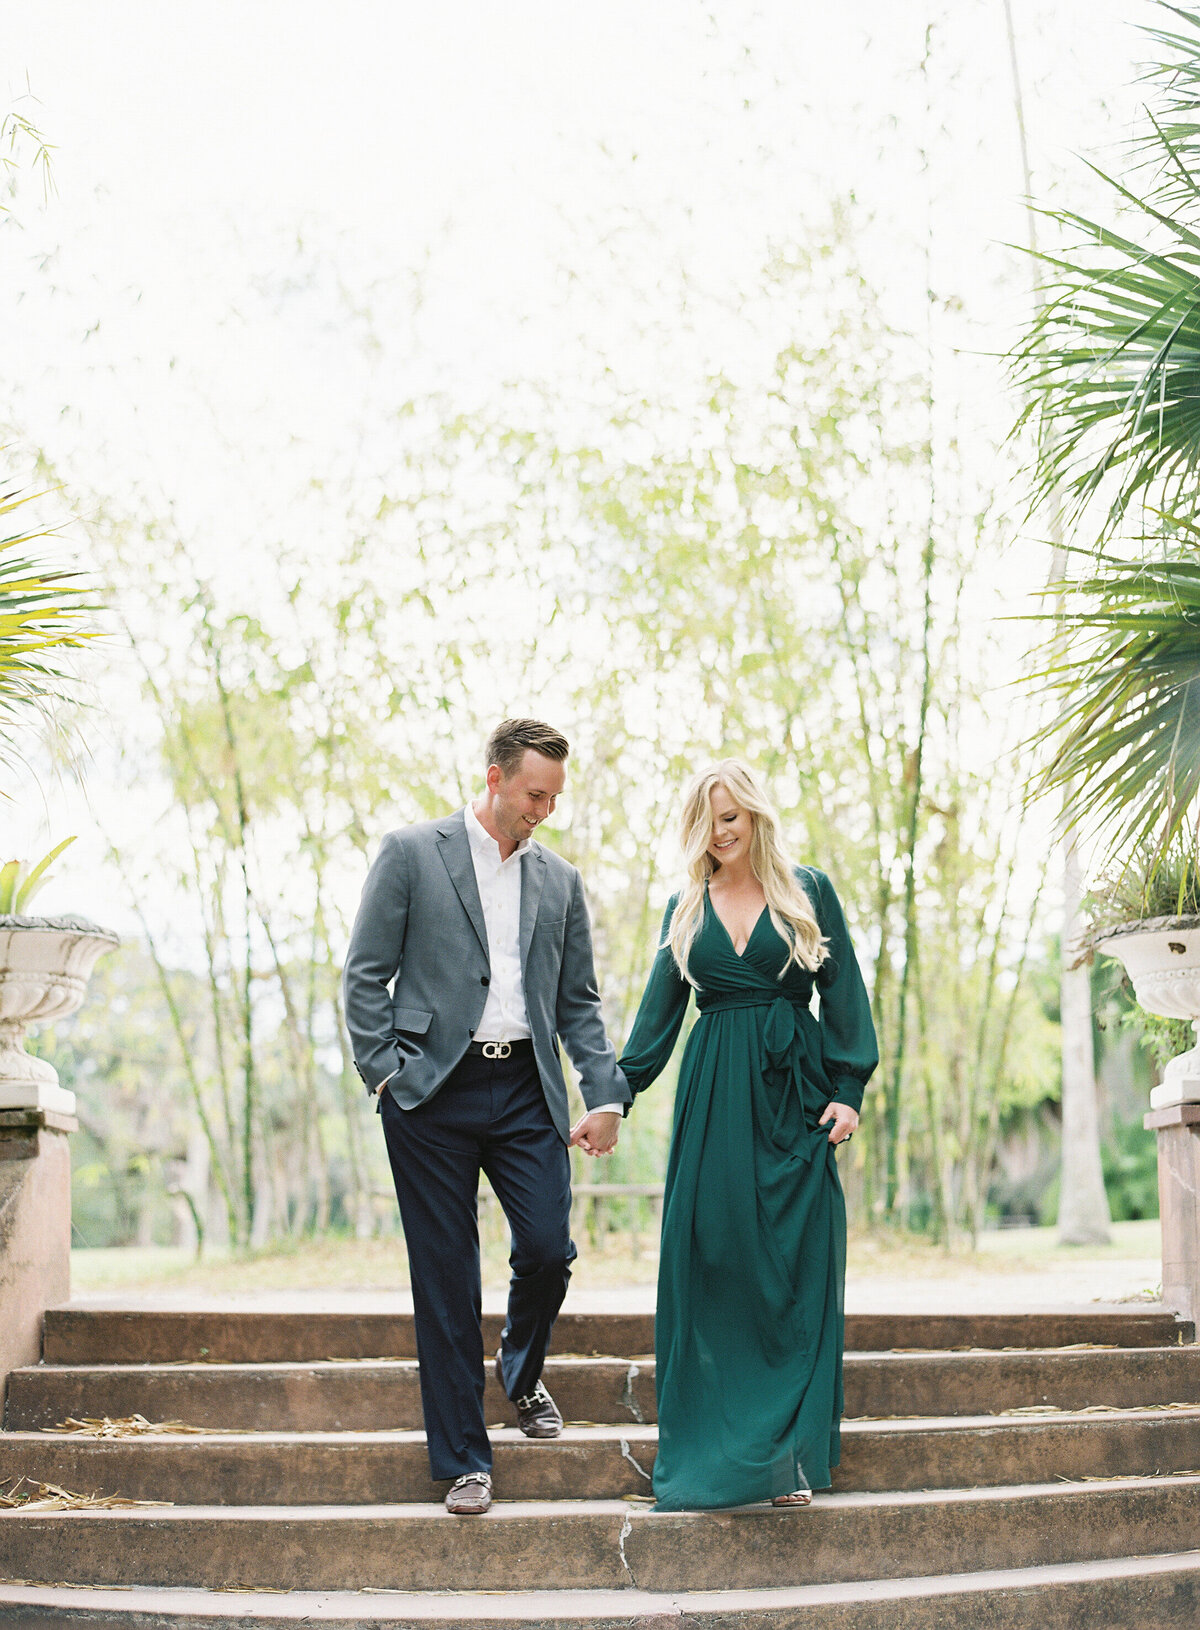 Napl-Florida-Engagement-film-photogrpaher-koreshan-state-park-8